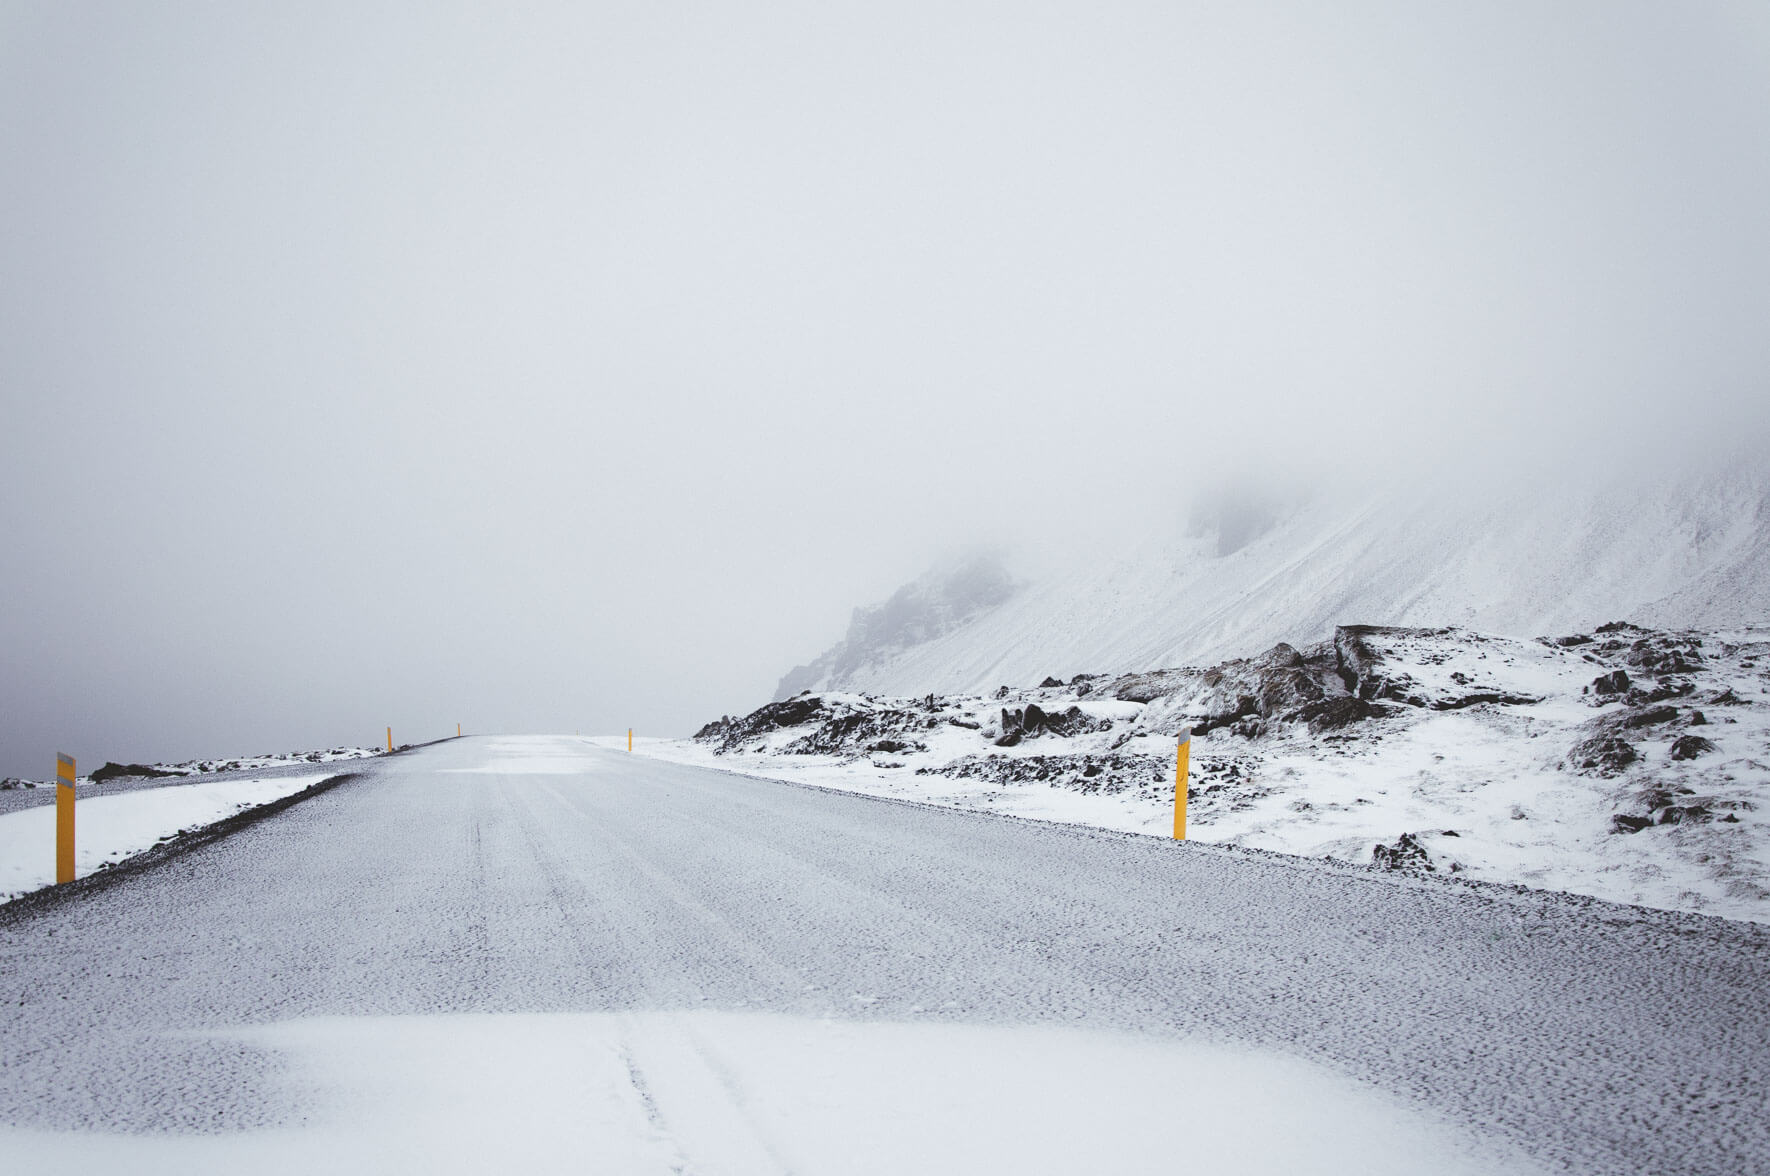 Snowy road in the Snæfellsjökull National Park of Iceland